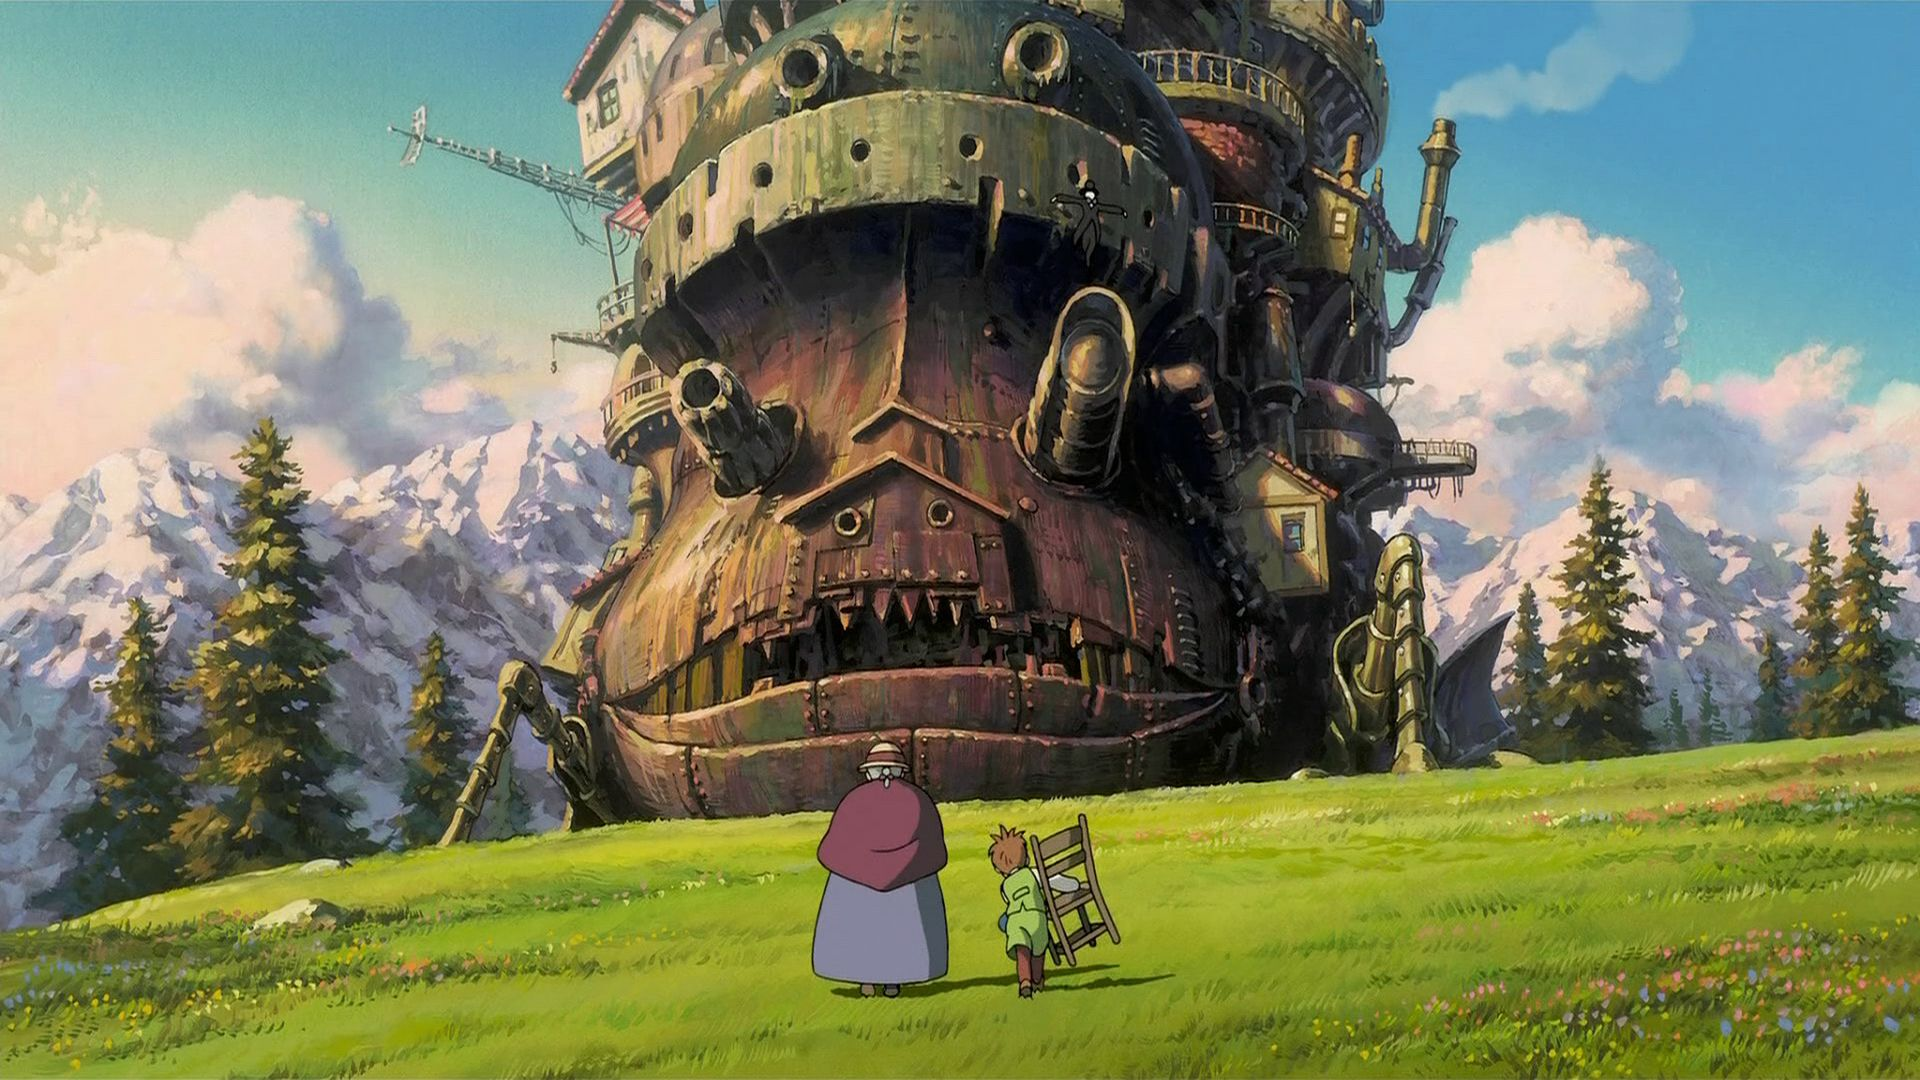 HowlsMovingCastle_source.jpg (1920×1080)